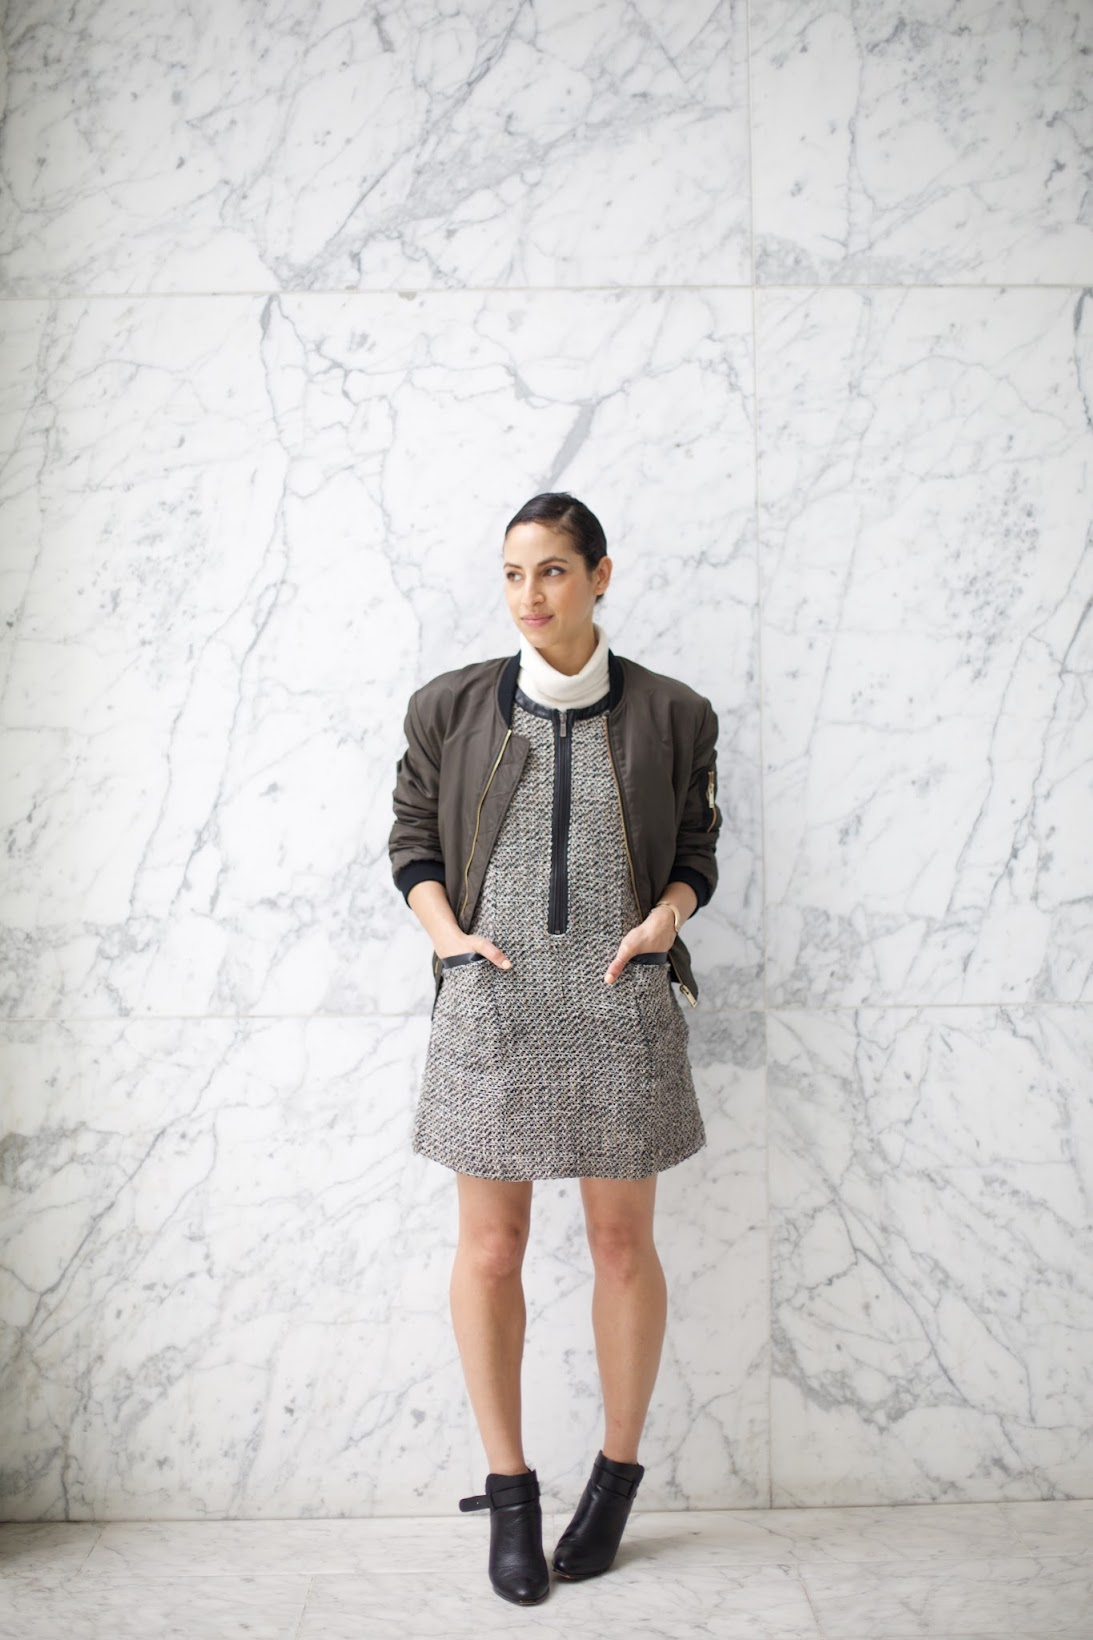 ther most photogaraphed marble backdrop in San Francisco, bomber jacket, zara bomber jacket, tweed shift dress, white turtleneck, marble wall, marble wall in sf